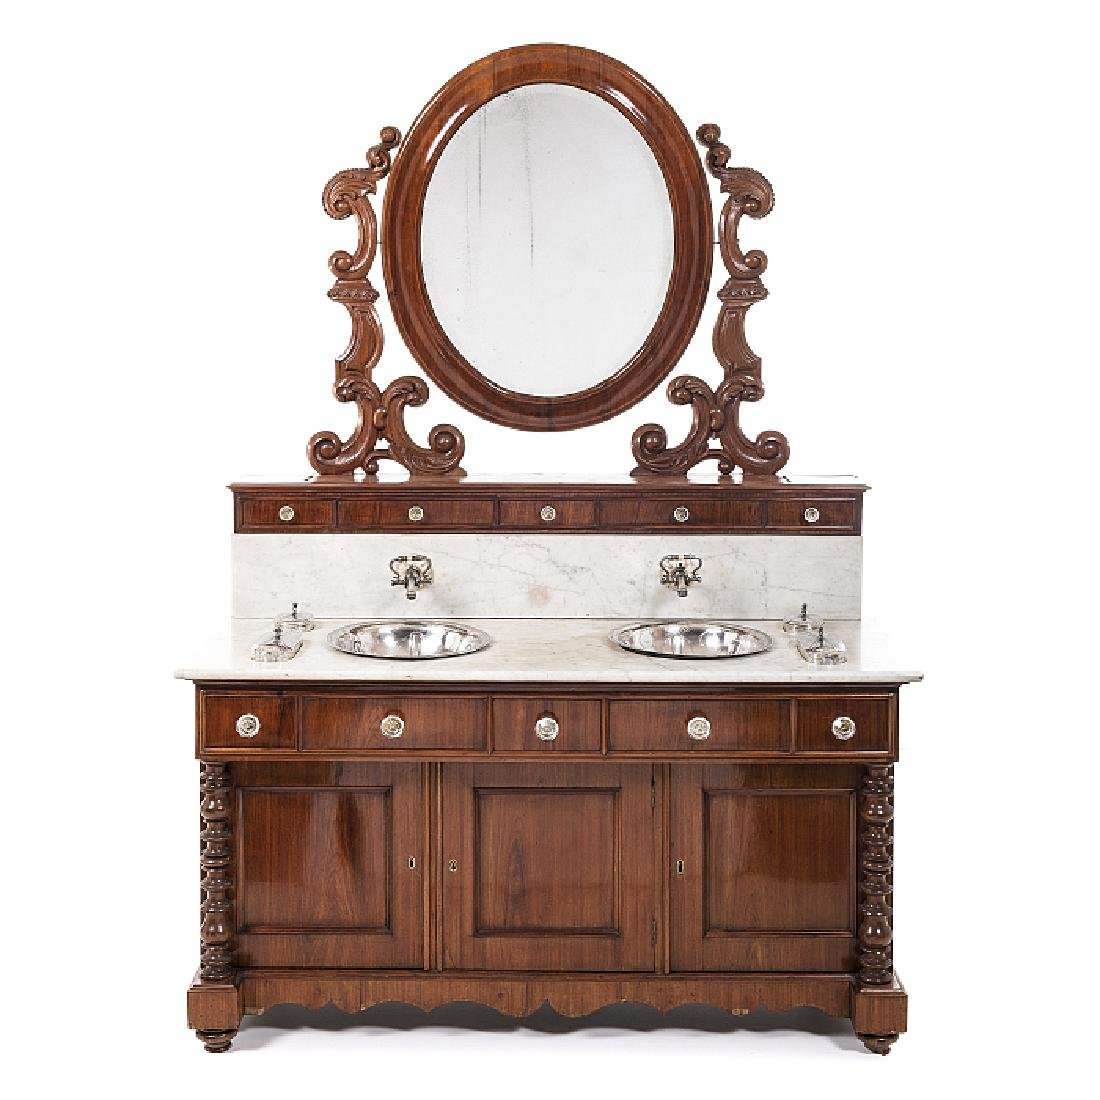 Toilette cabinet with washbowls and accessories in